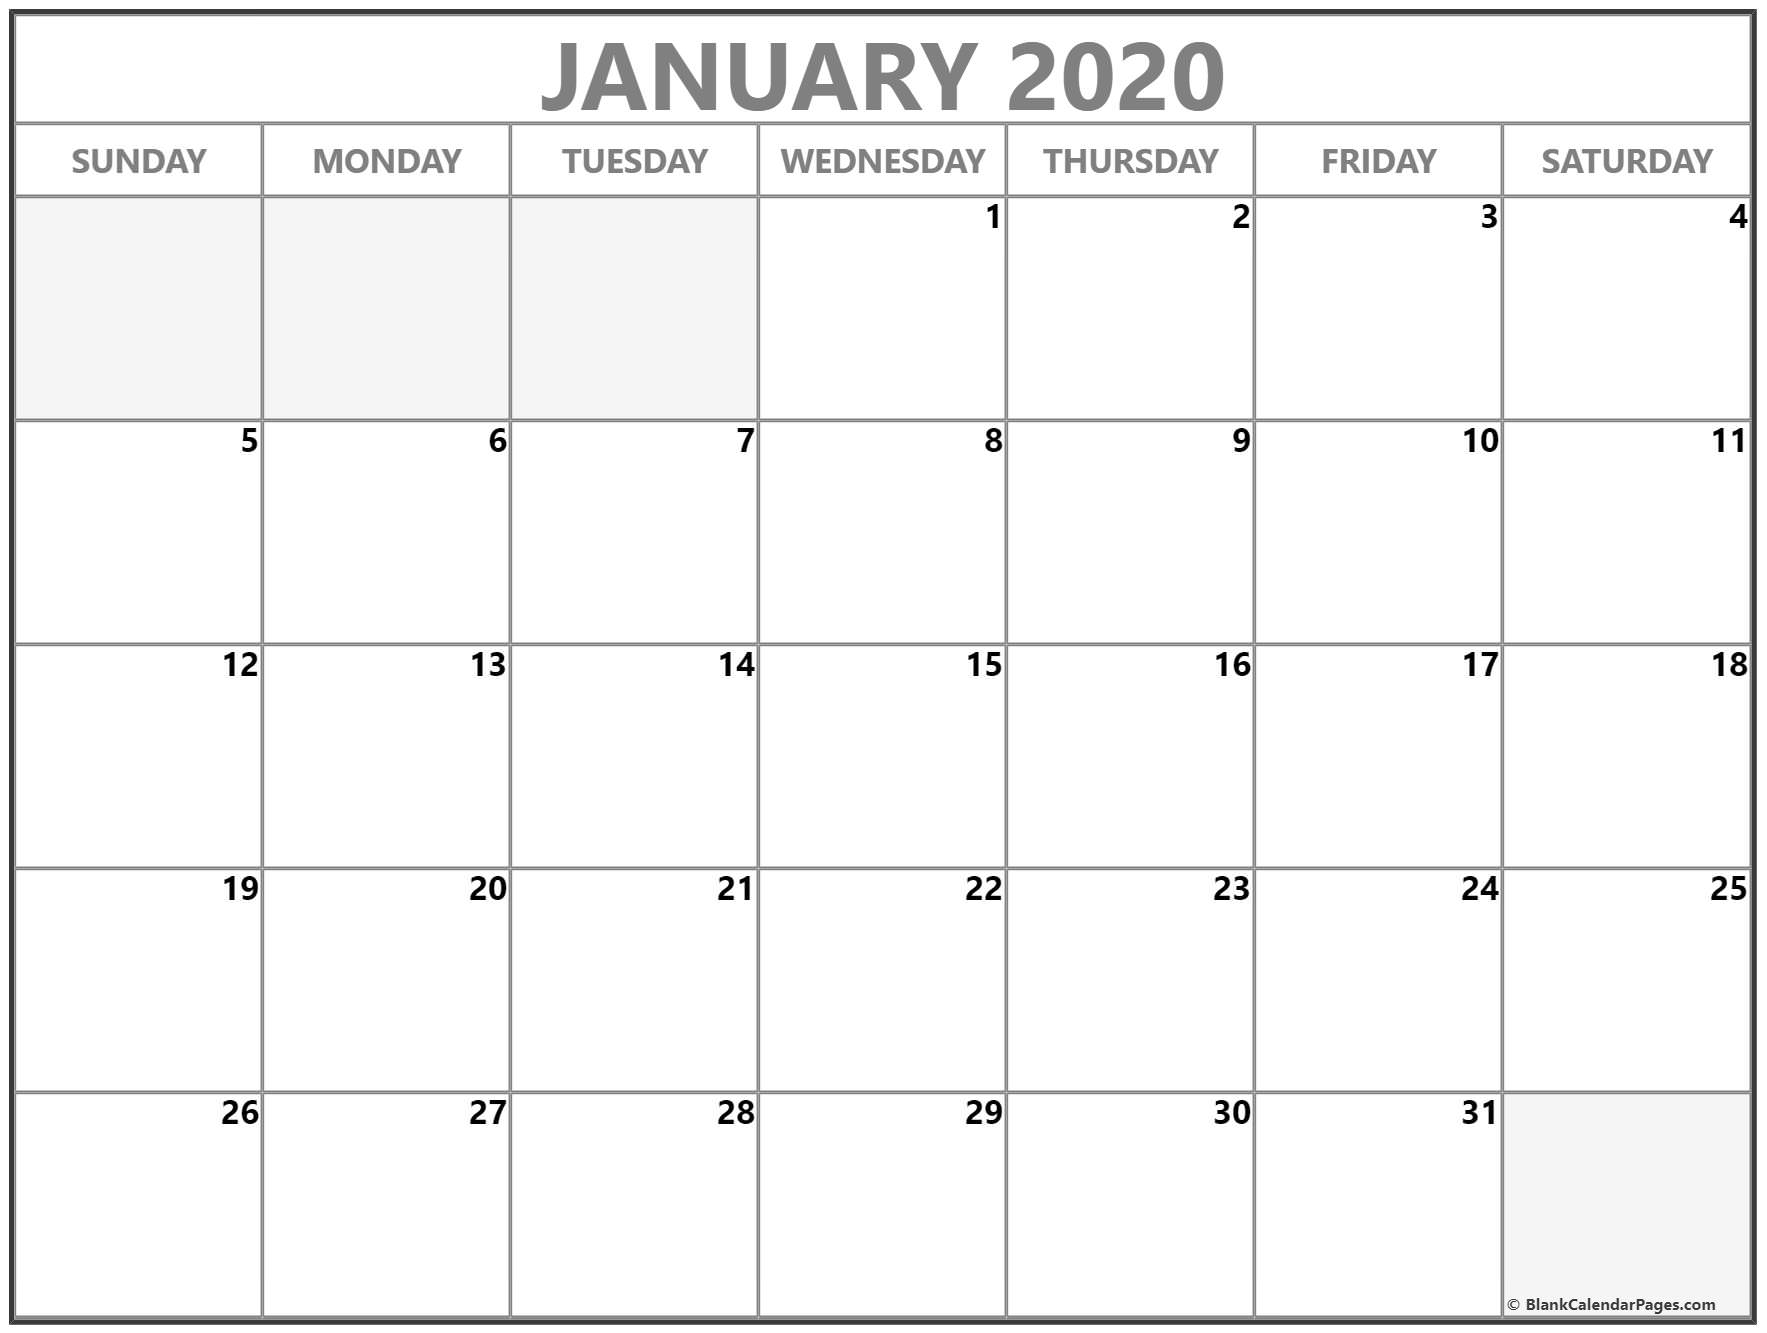 January 2020 Calendar | Free Printable Monthly Calendars within 2020 Imom Free Calendars To Print